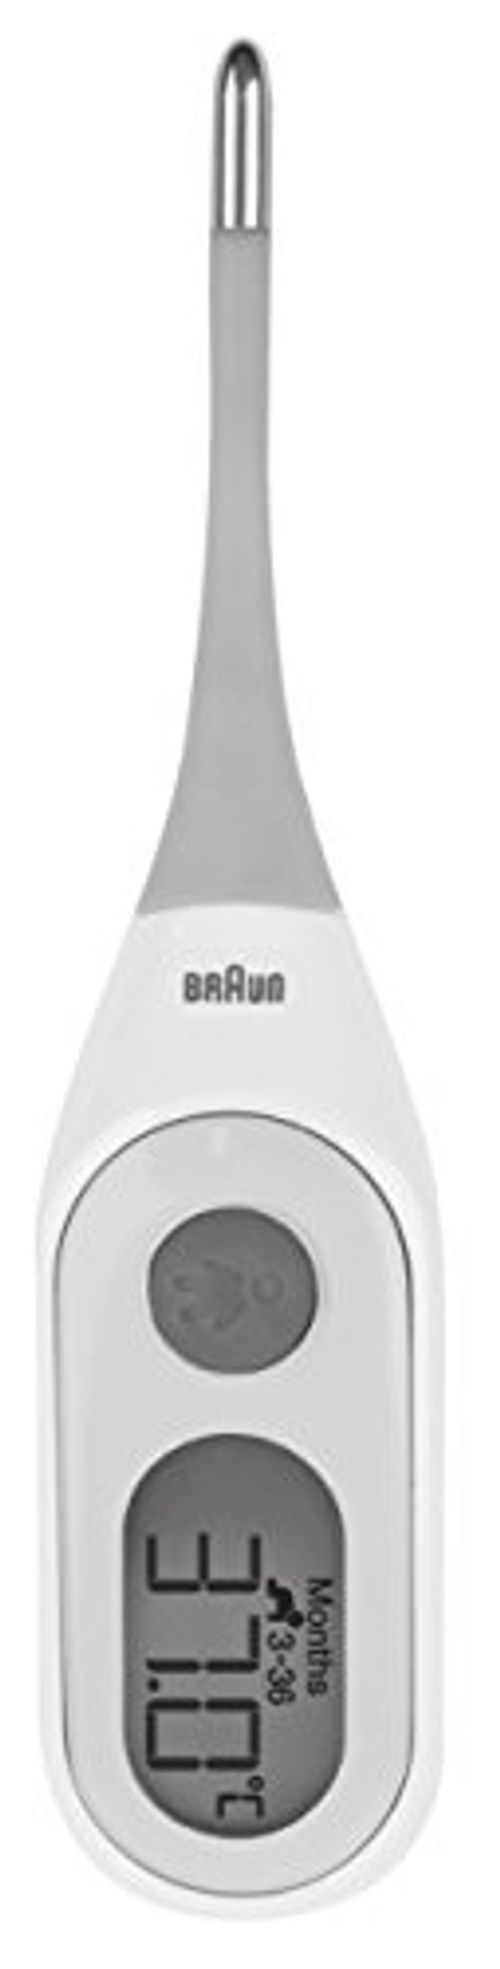 photo Wallpaper of Braun-Braun PRT2000 Termómetro Digital Con Age Precision-Blanco